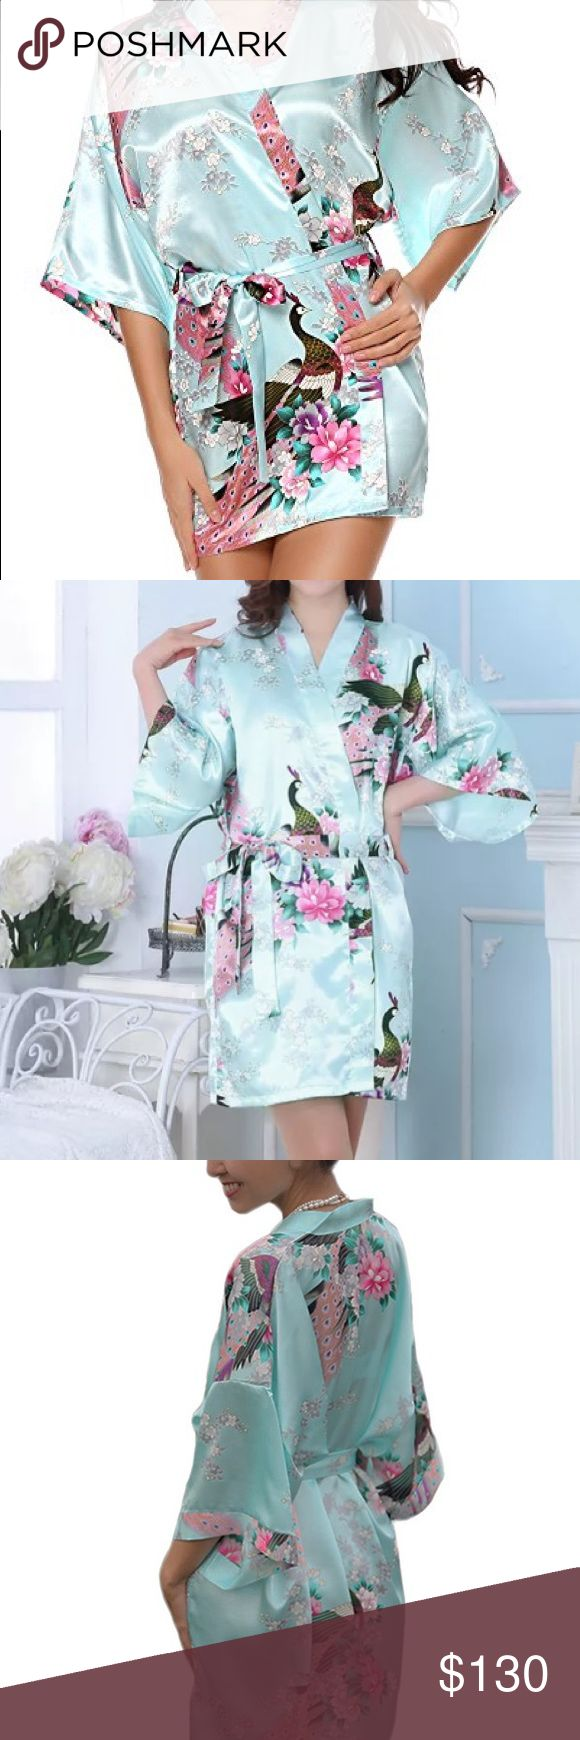 "7 Bridesmaids robes : Light blue and white NWT Bundle of 6 light blue bridesmaid kimono silk robes. Plus one white robe for the bride. 7 robes total. Cute peacock print. Approx. 35"" in length. Has a matching sash to tie around waist. One size fits most. Would like to sell all together. Please inquire if you need a specific amount. All new with tag in plastic package. Also available in light pink and light purple. Intimates & Sleepwear Robes"